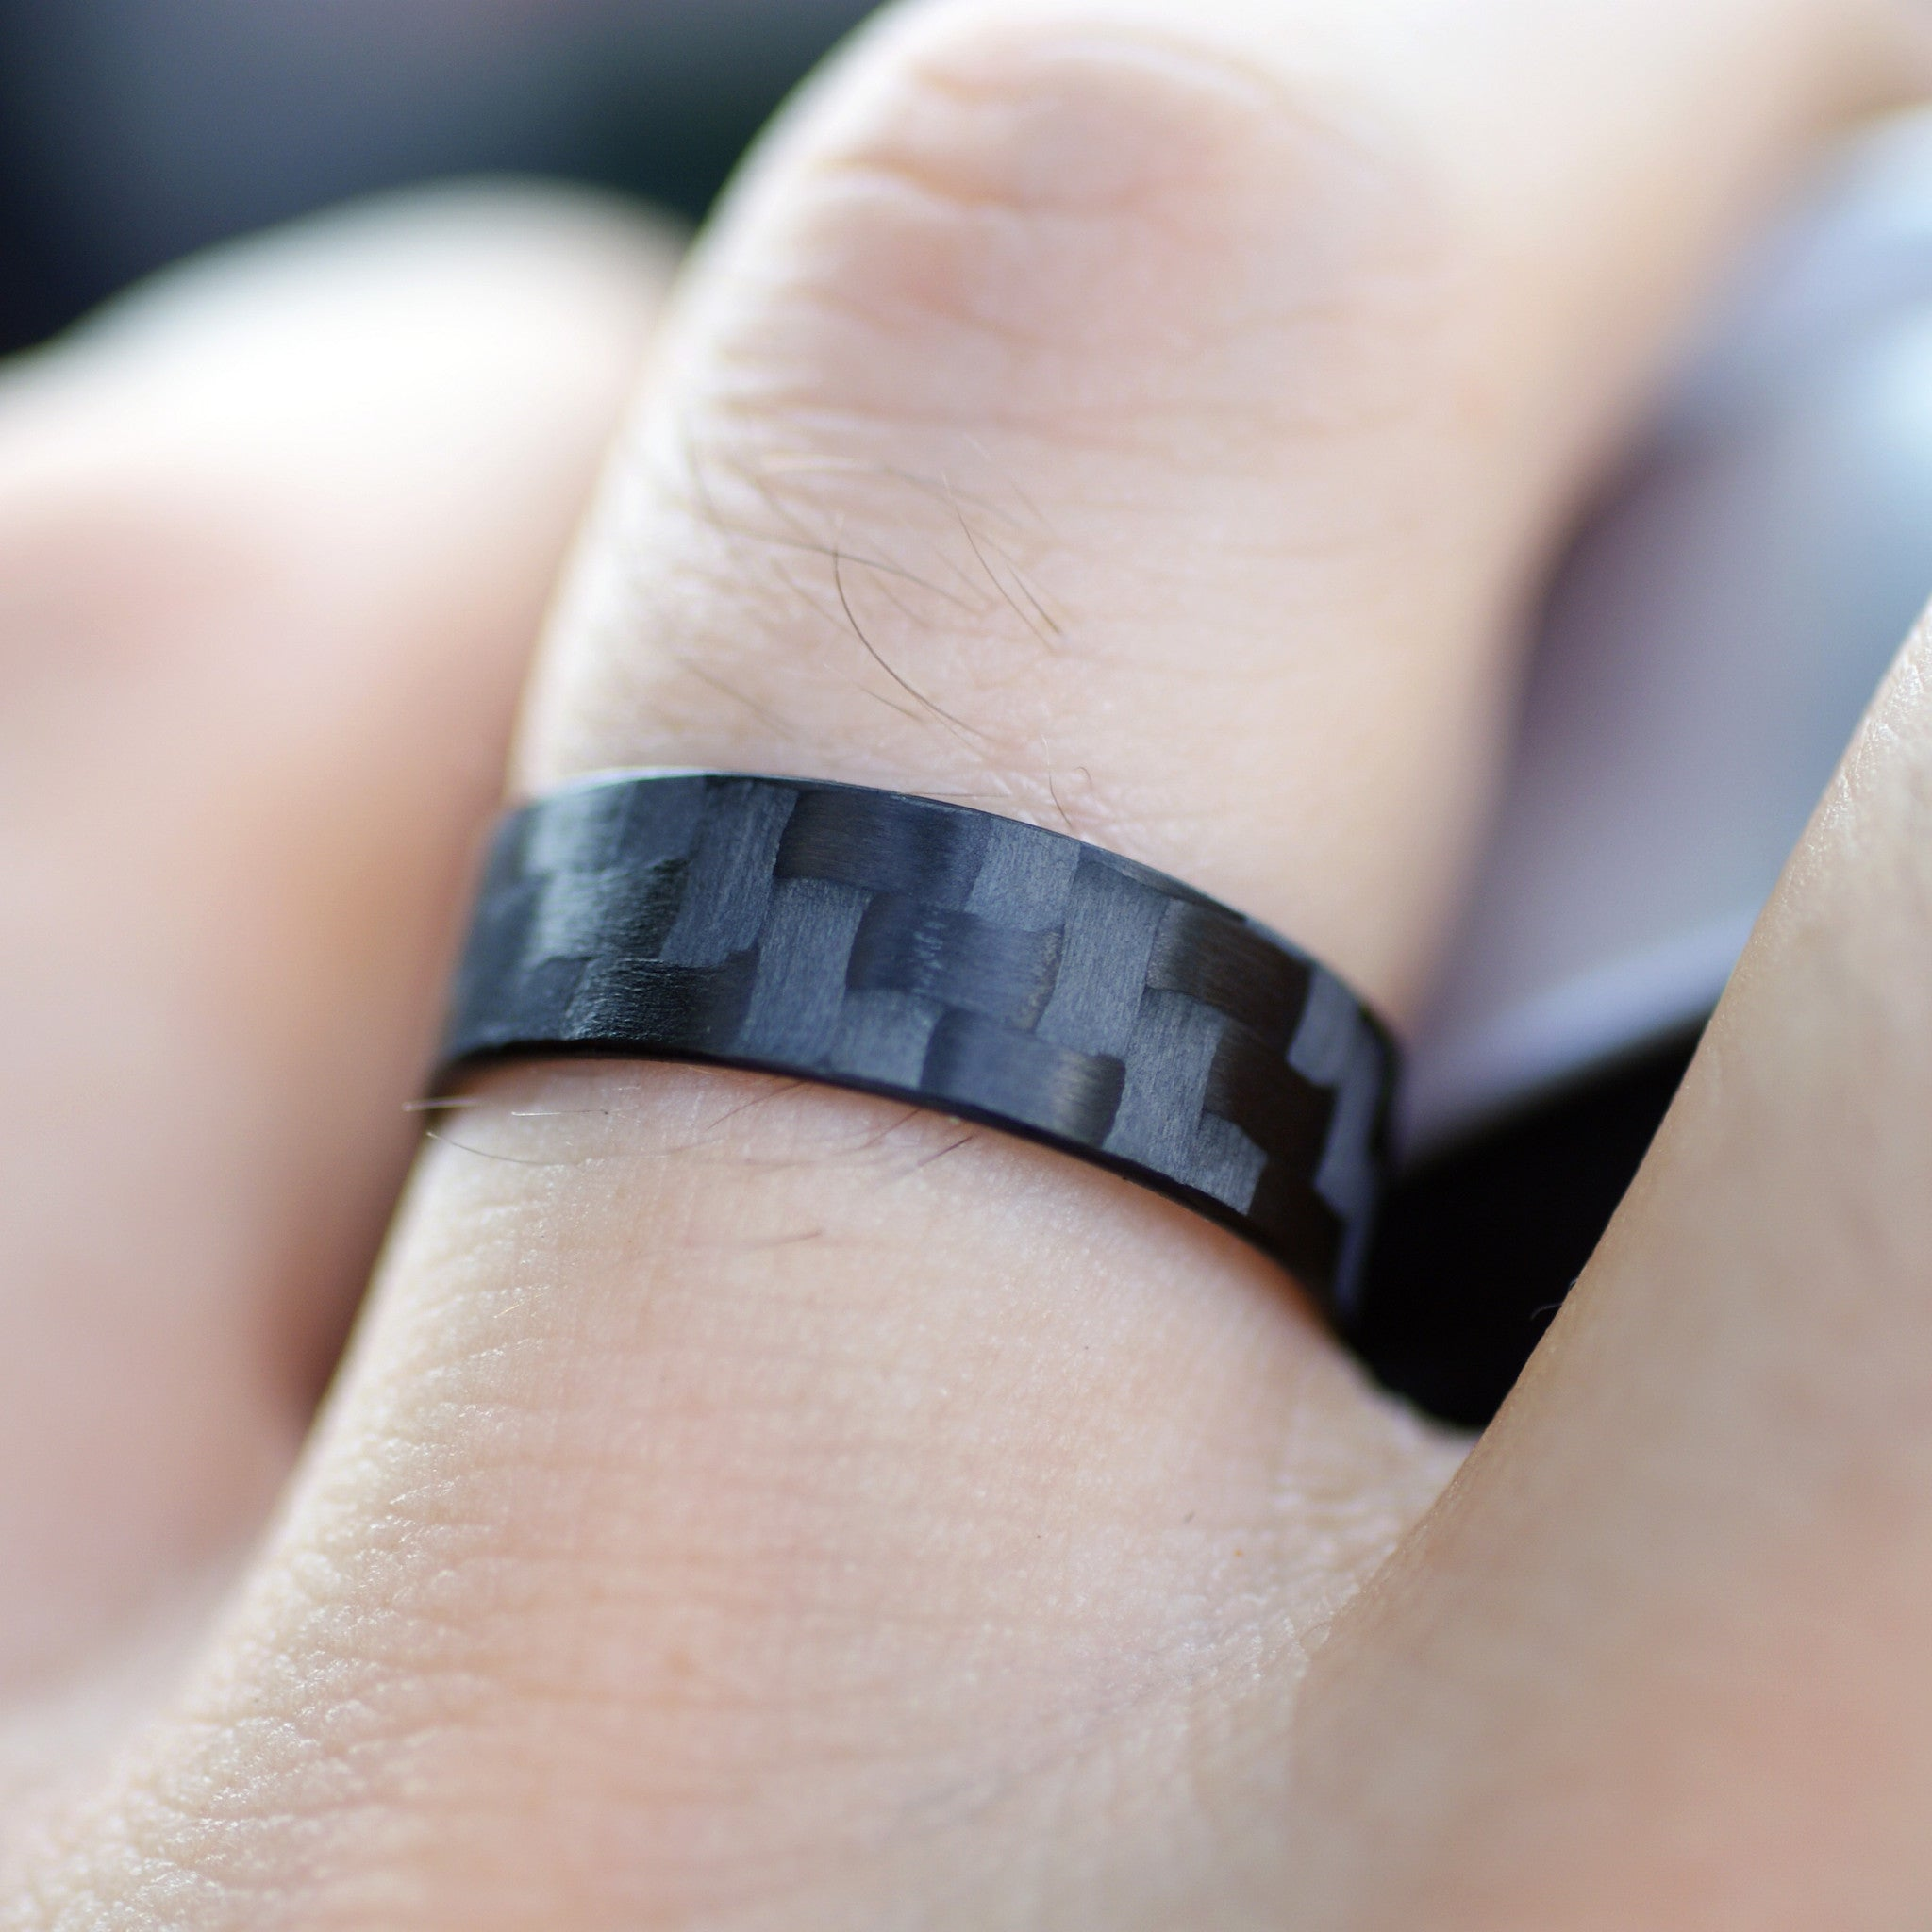 mirell rings ti edward black ring carbon fiber wedding sterling titanium wellington o silver by